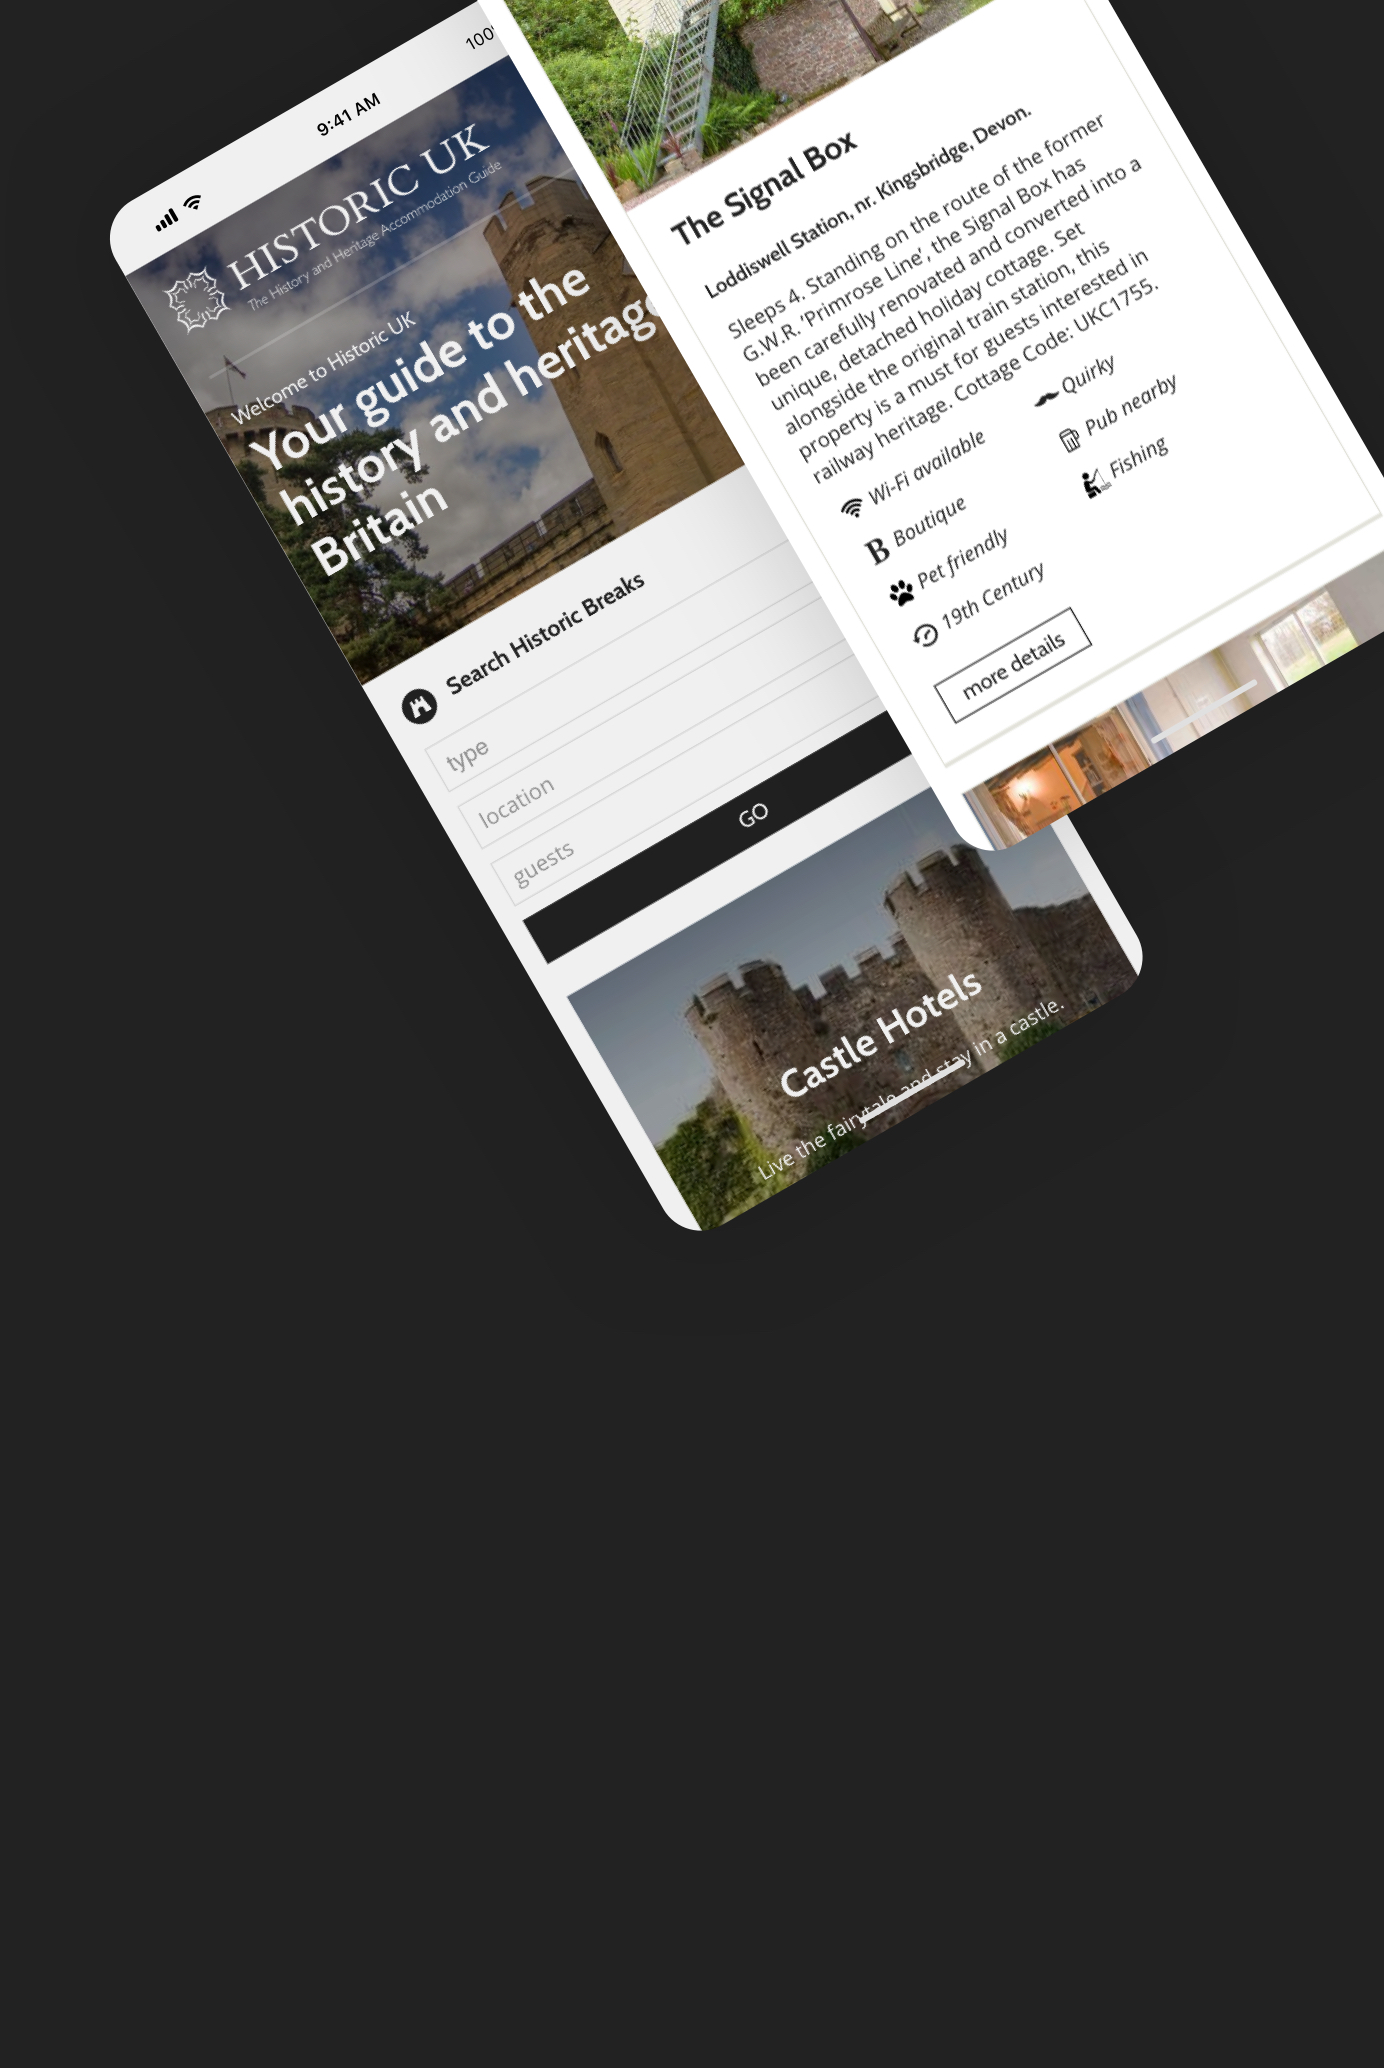 Using great design and WordPress to bring the UK's history to life